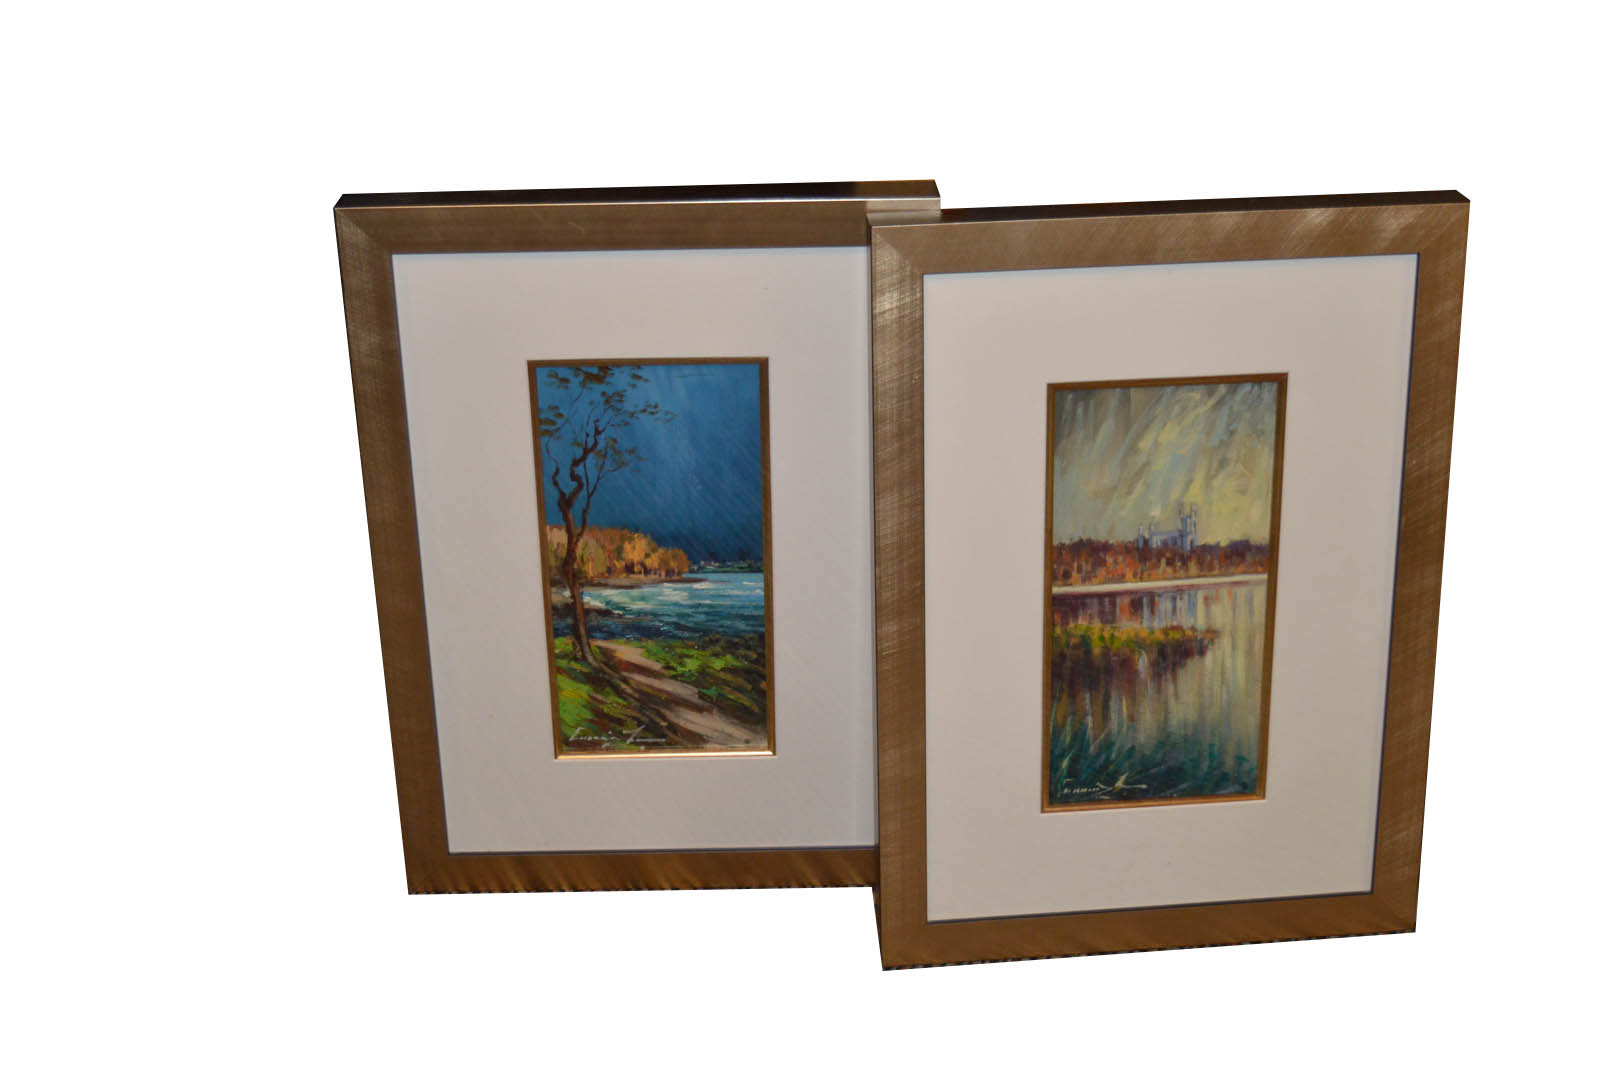 Lot 594 - A Pair of Oil Paintings 'Sea and Landscapes' - W Cunningham